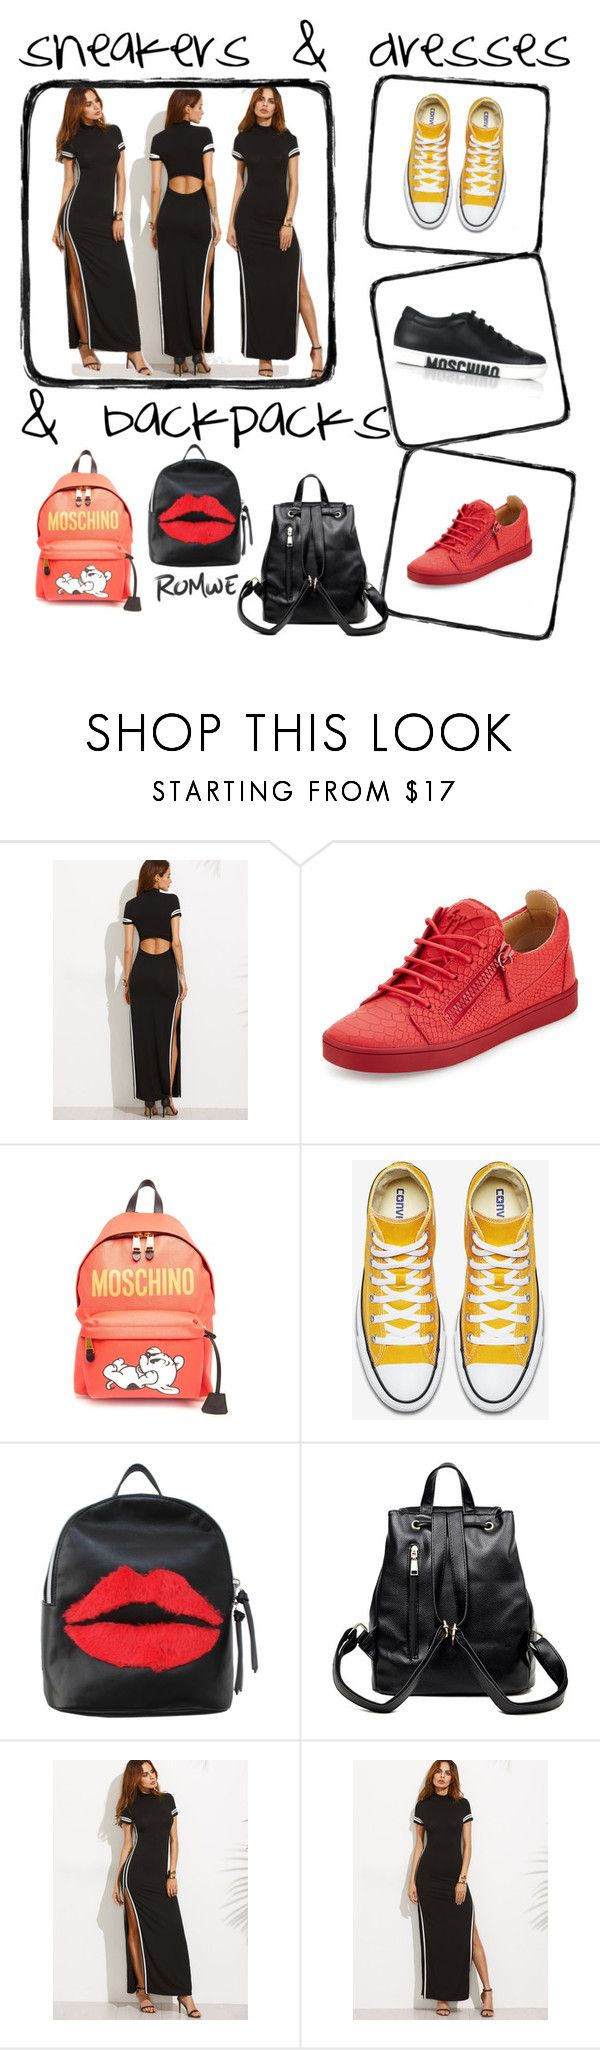 """""""romwe sneakers&dresses"""" by simplybae ❤ liked on Polyvore featuring Giuseppe Zanotti, Moschino and T-shirt & Jeans"""